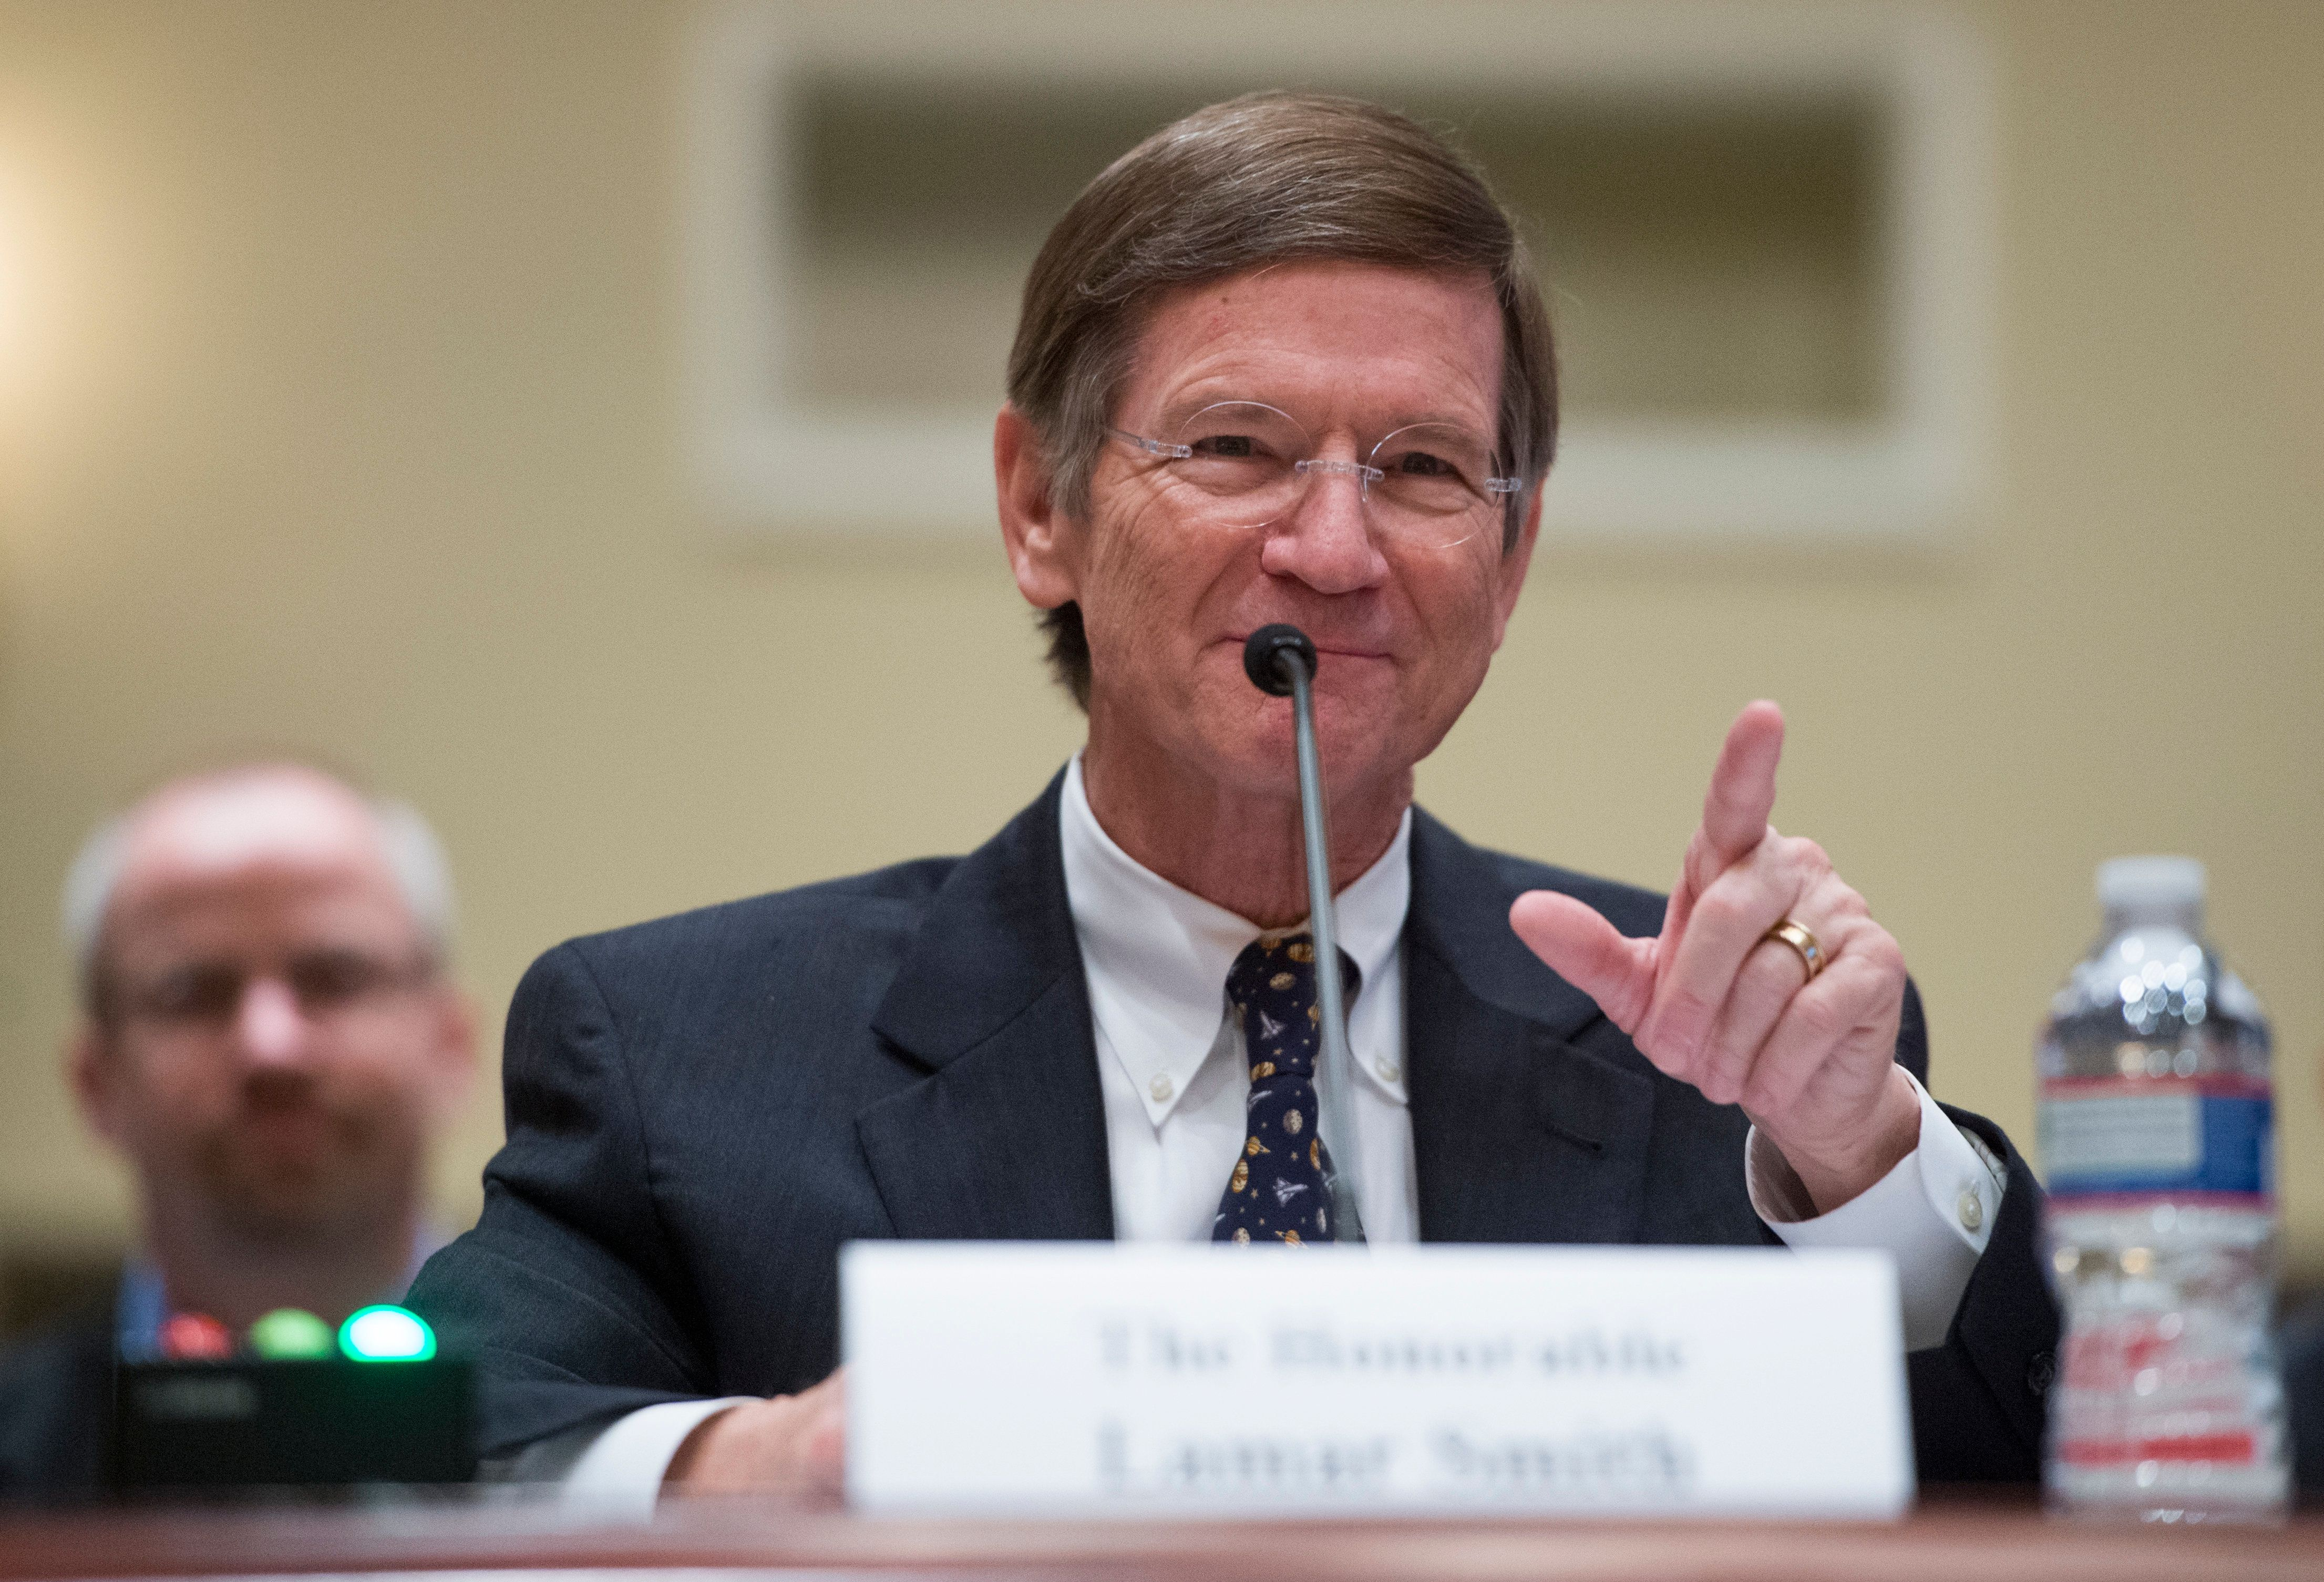 Rep. Lamar Smith (R-Texas), chairman of the House Committee on Science, Space, and Technology, announced Thursday that he&nbs